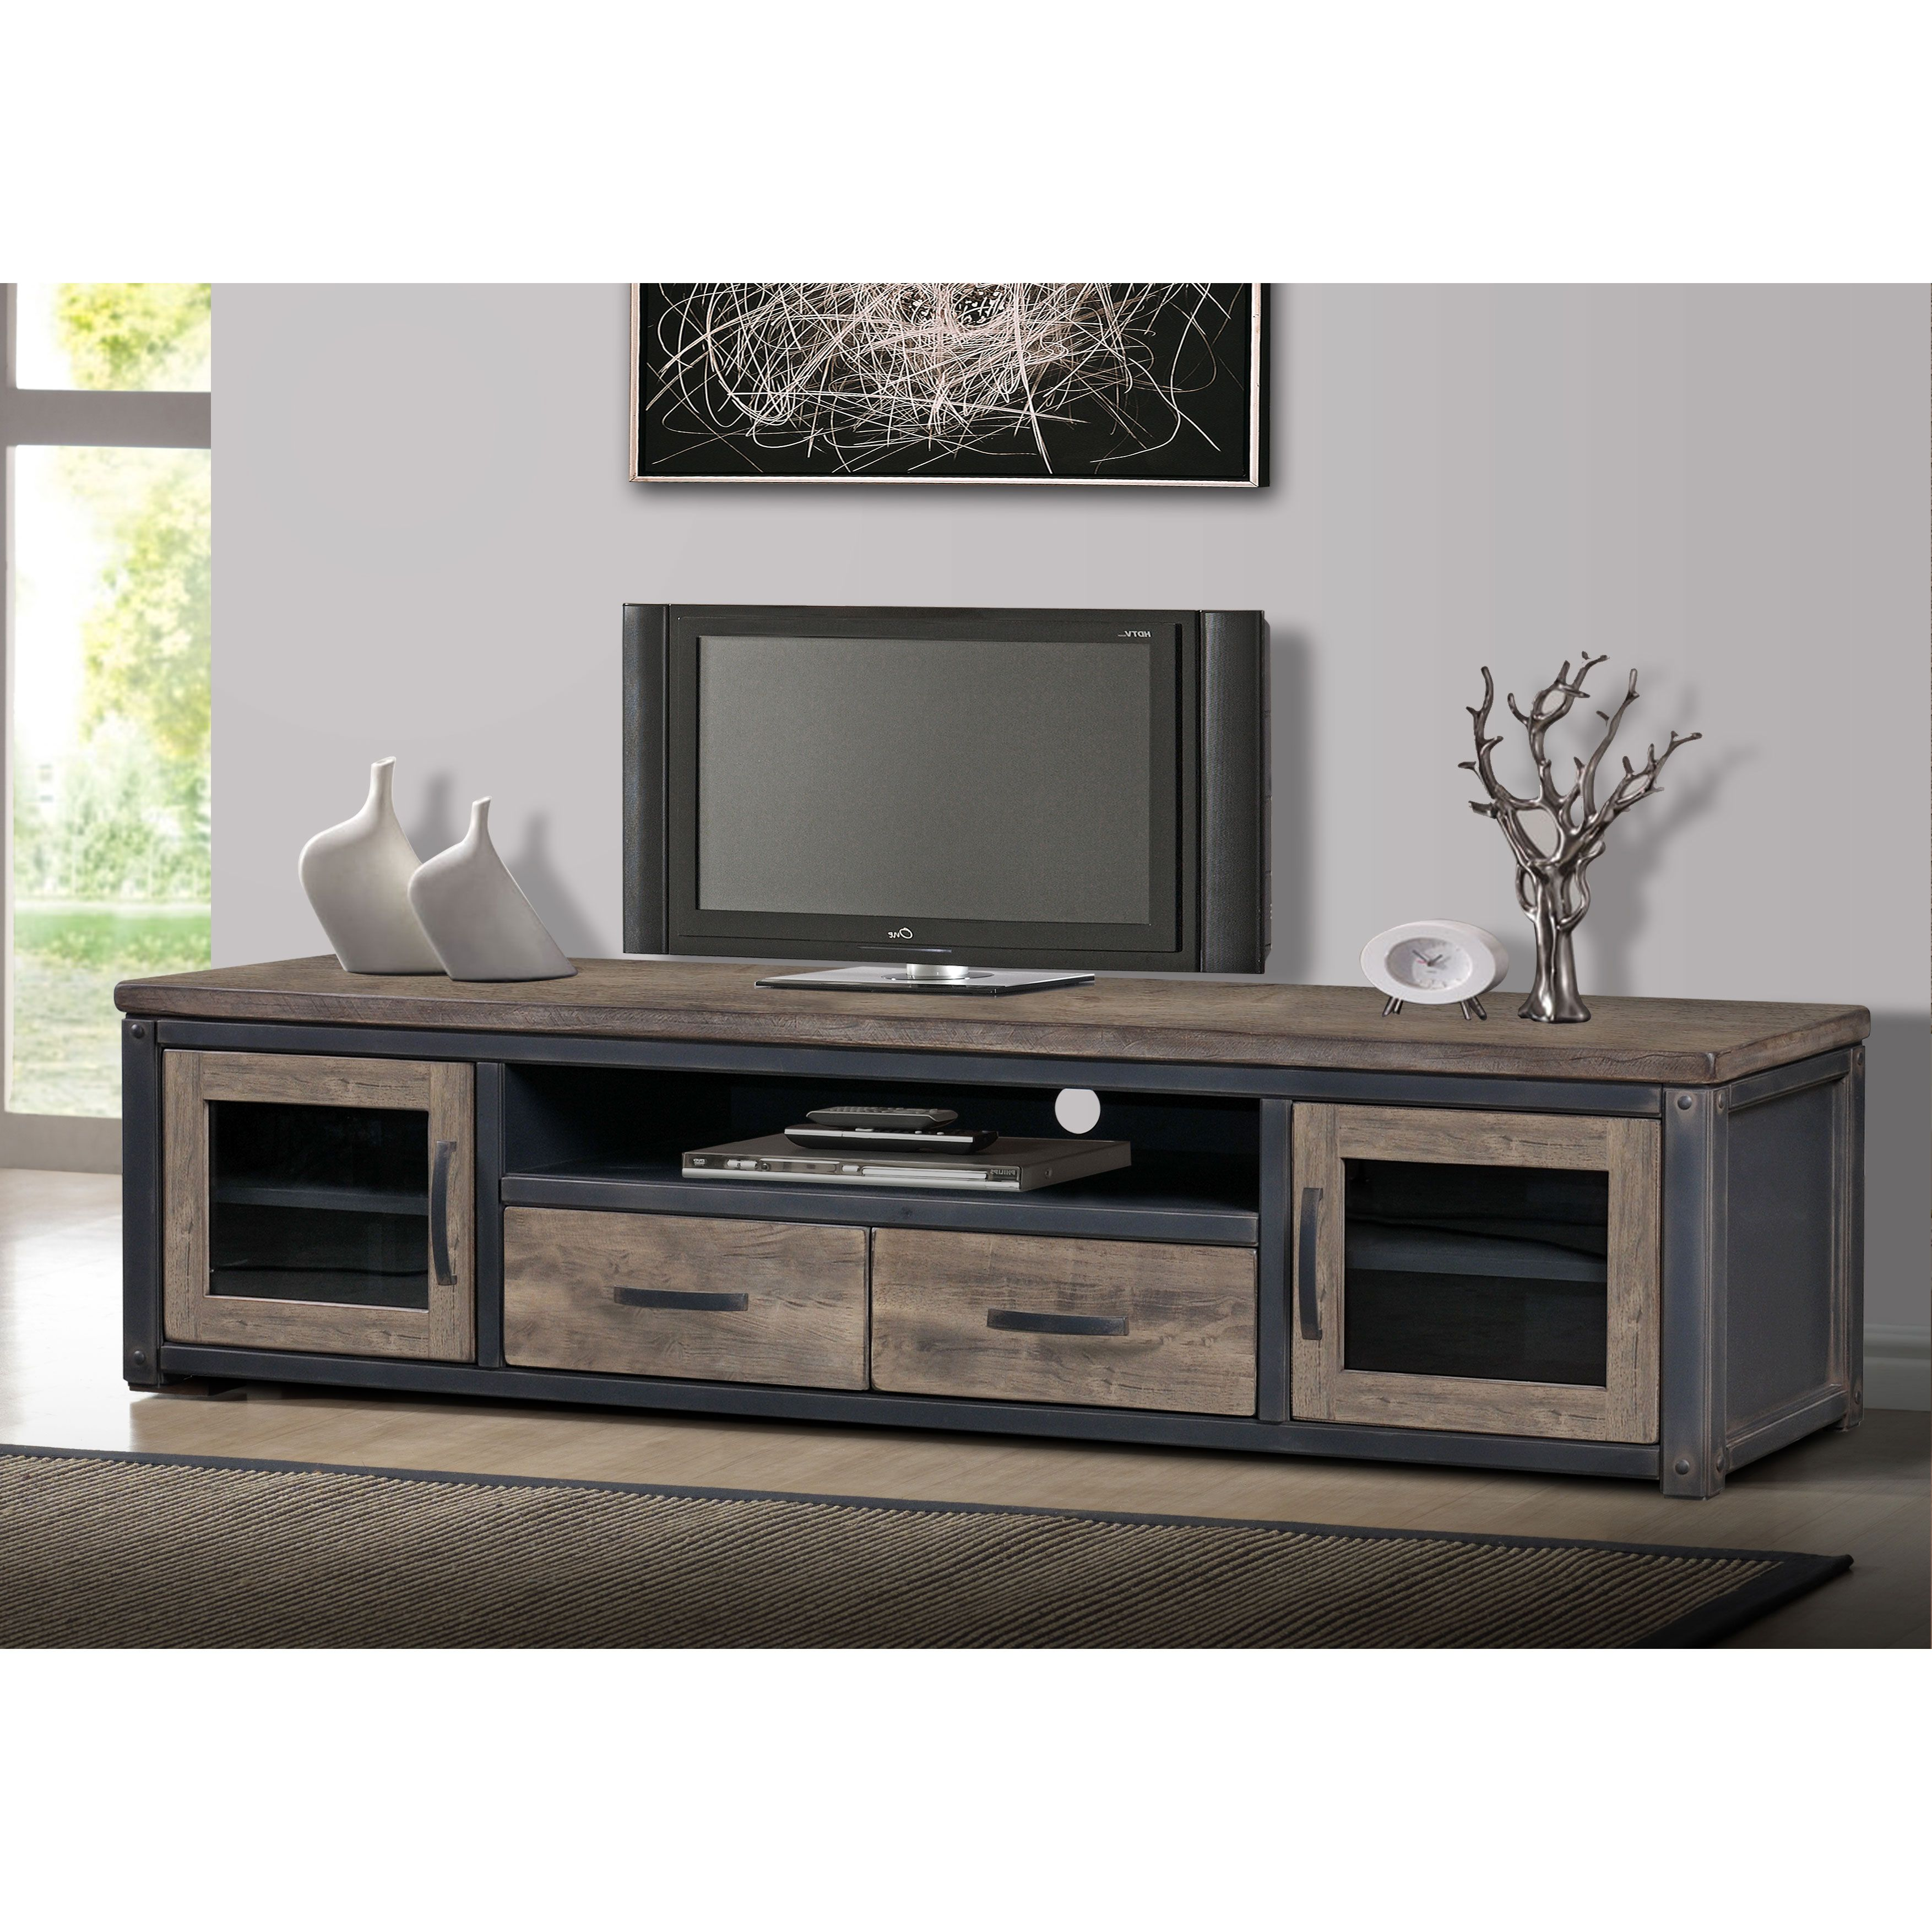 This Heritage Entertainment Center Is Rustic In Feel And Sy Construction With A Vintage